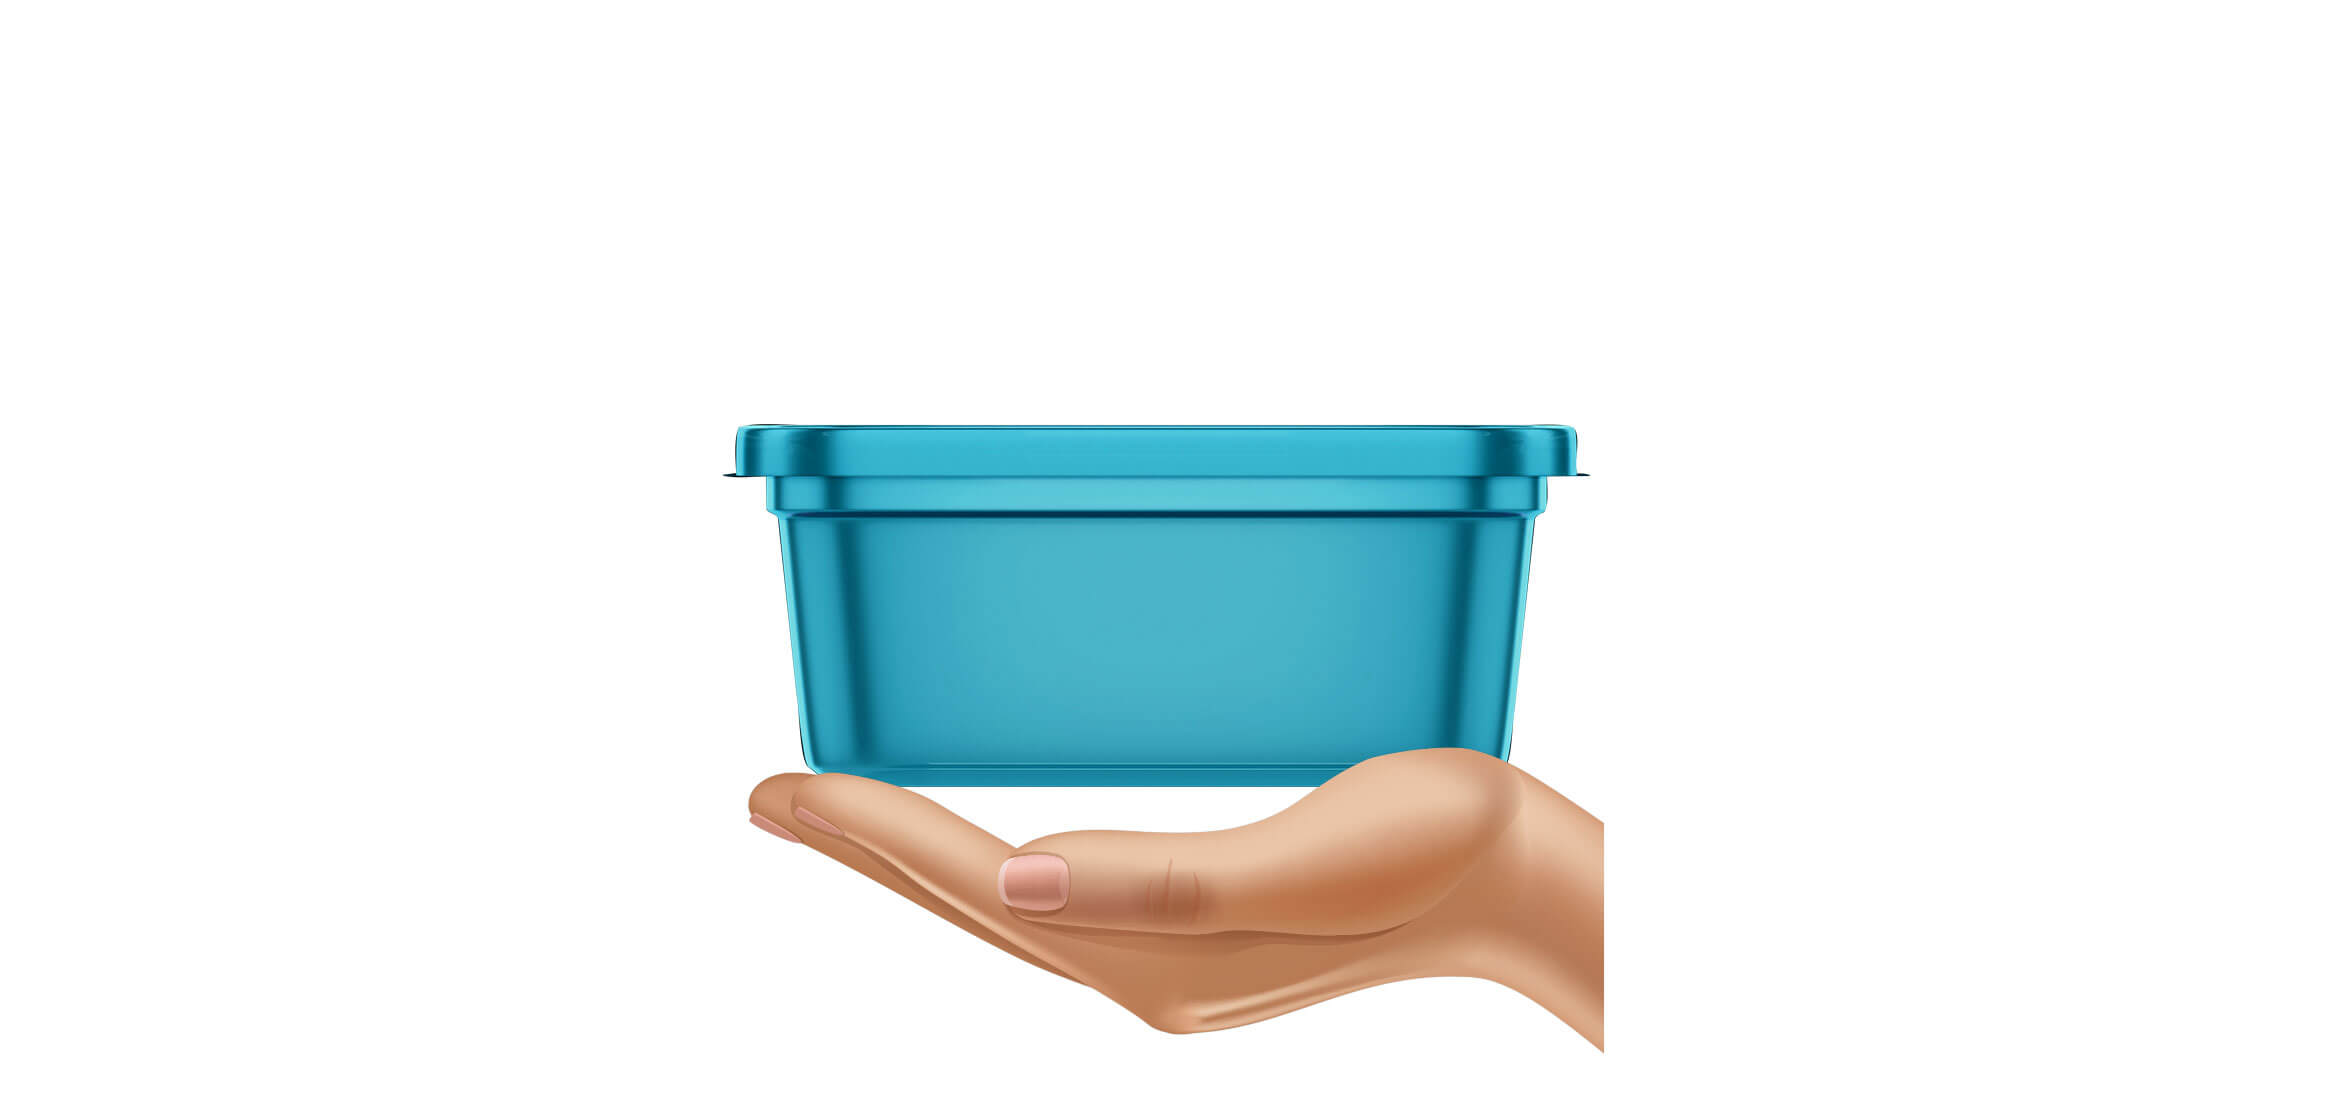 Nutcracker-Container-Square-Medium-Blue-Hand-2X